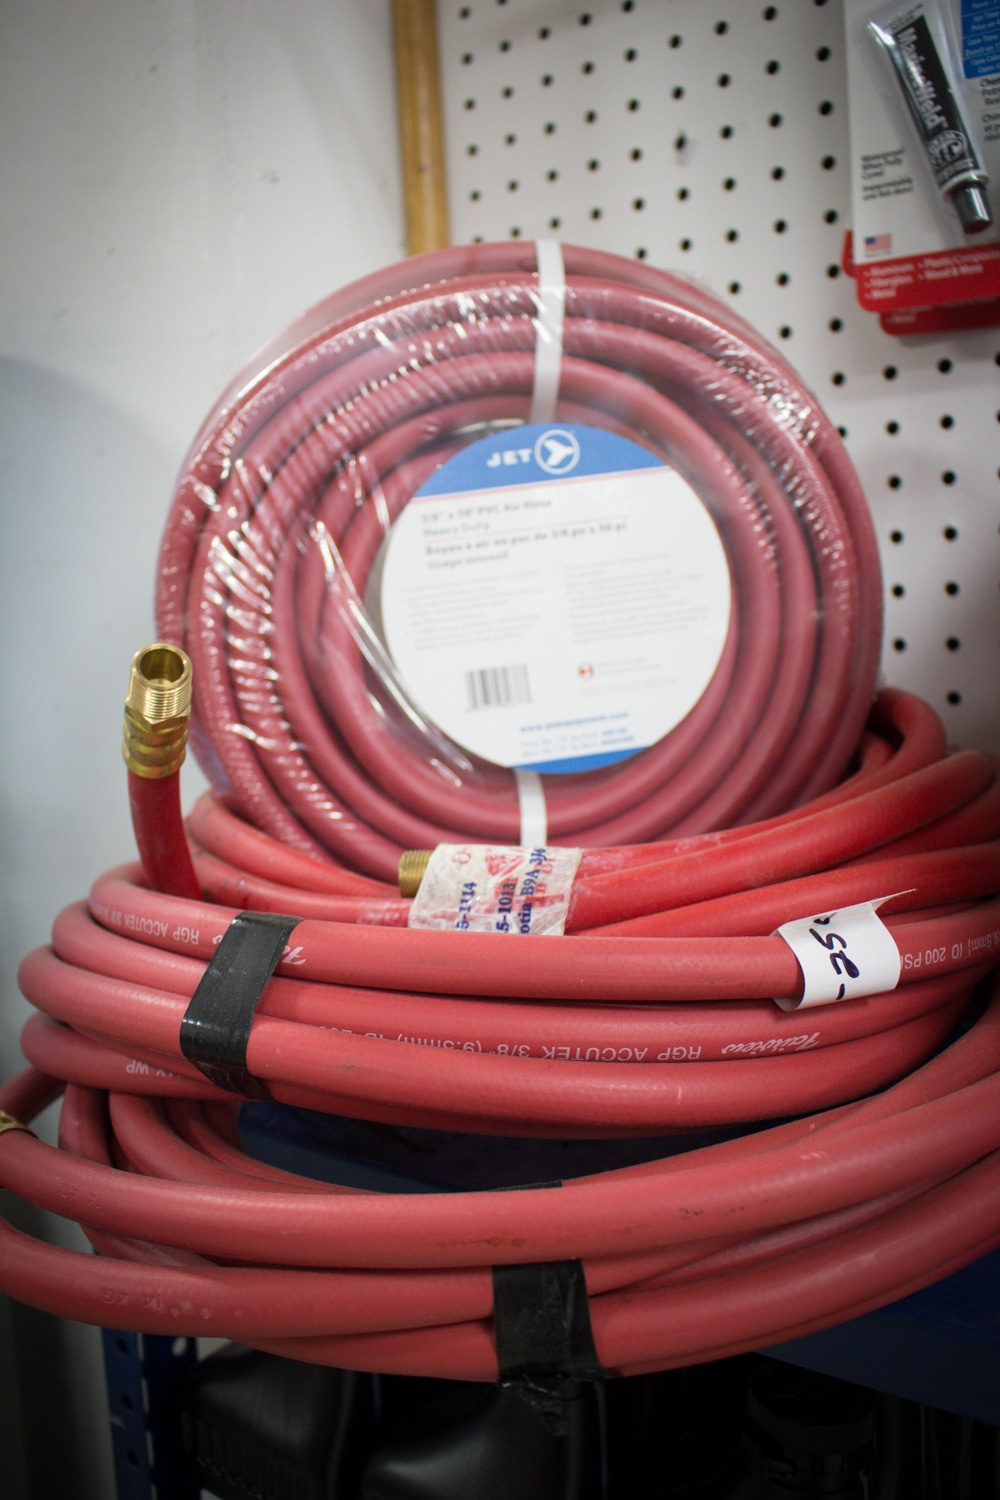 Air hose at Strait Supplies Limited